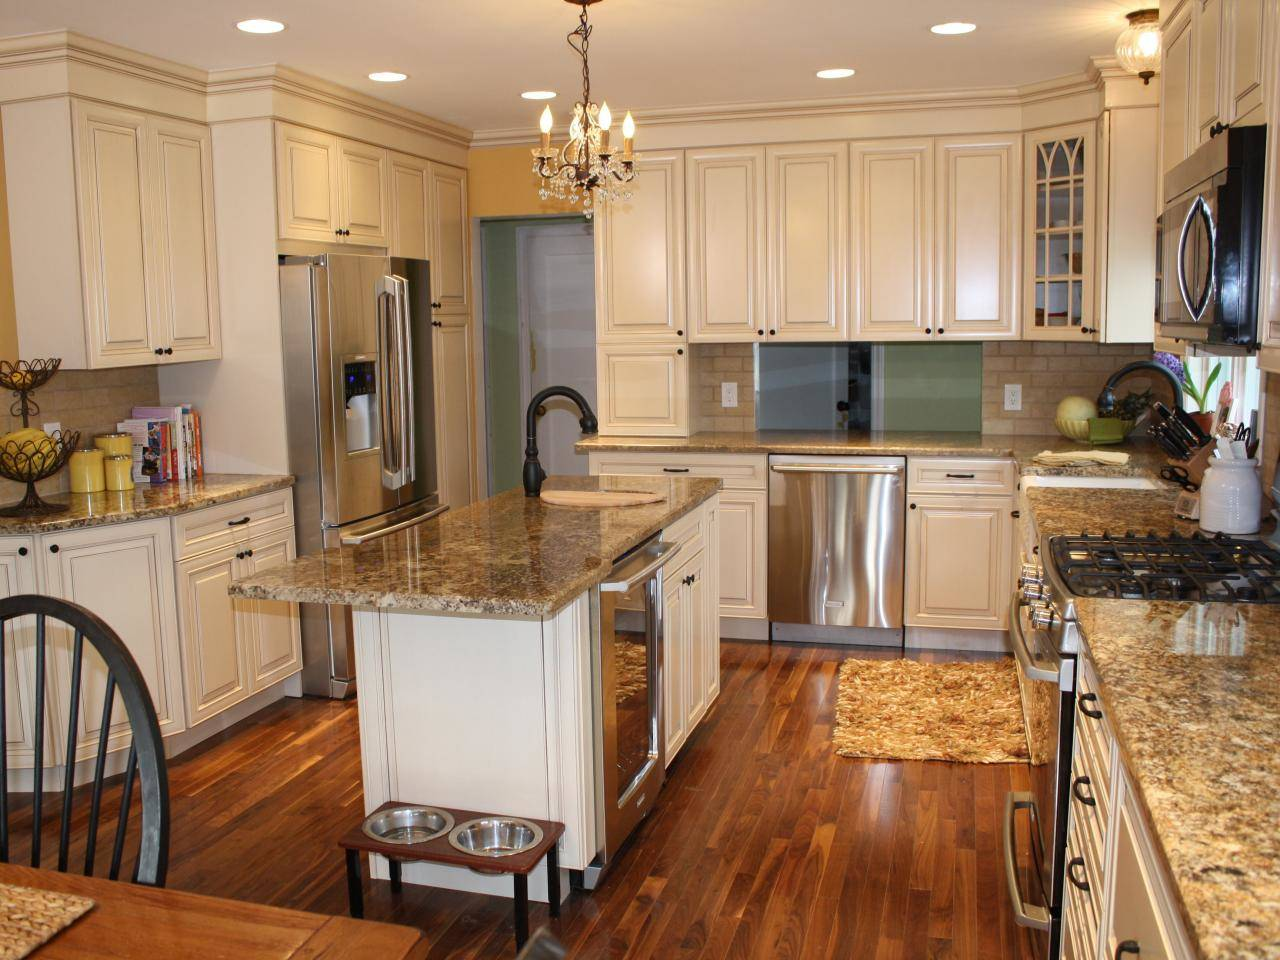 How to Afford a Kitchen Remodel Through Financing - My Ideal Home